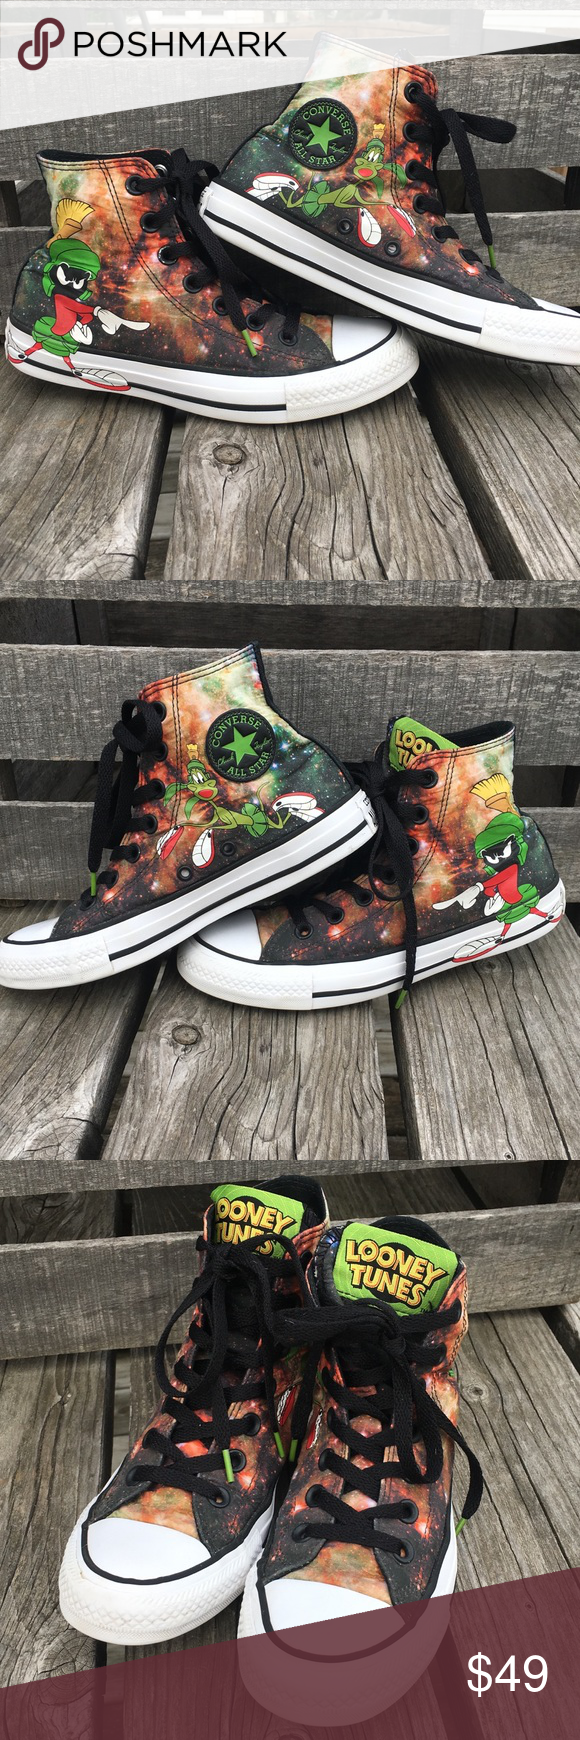 9dd65146ec46c2 🆕List! Looney Tunes Galaxy Converse! EUC! Marvin the Martian galaxy print  high top Converse! Women s size 6 size 4 men s kids. Great overall  condition!